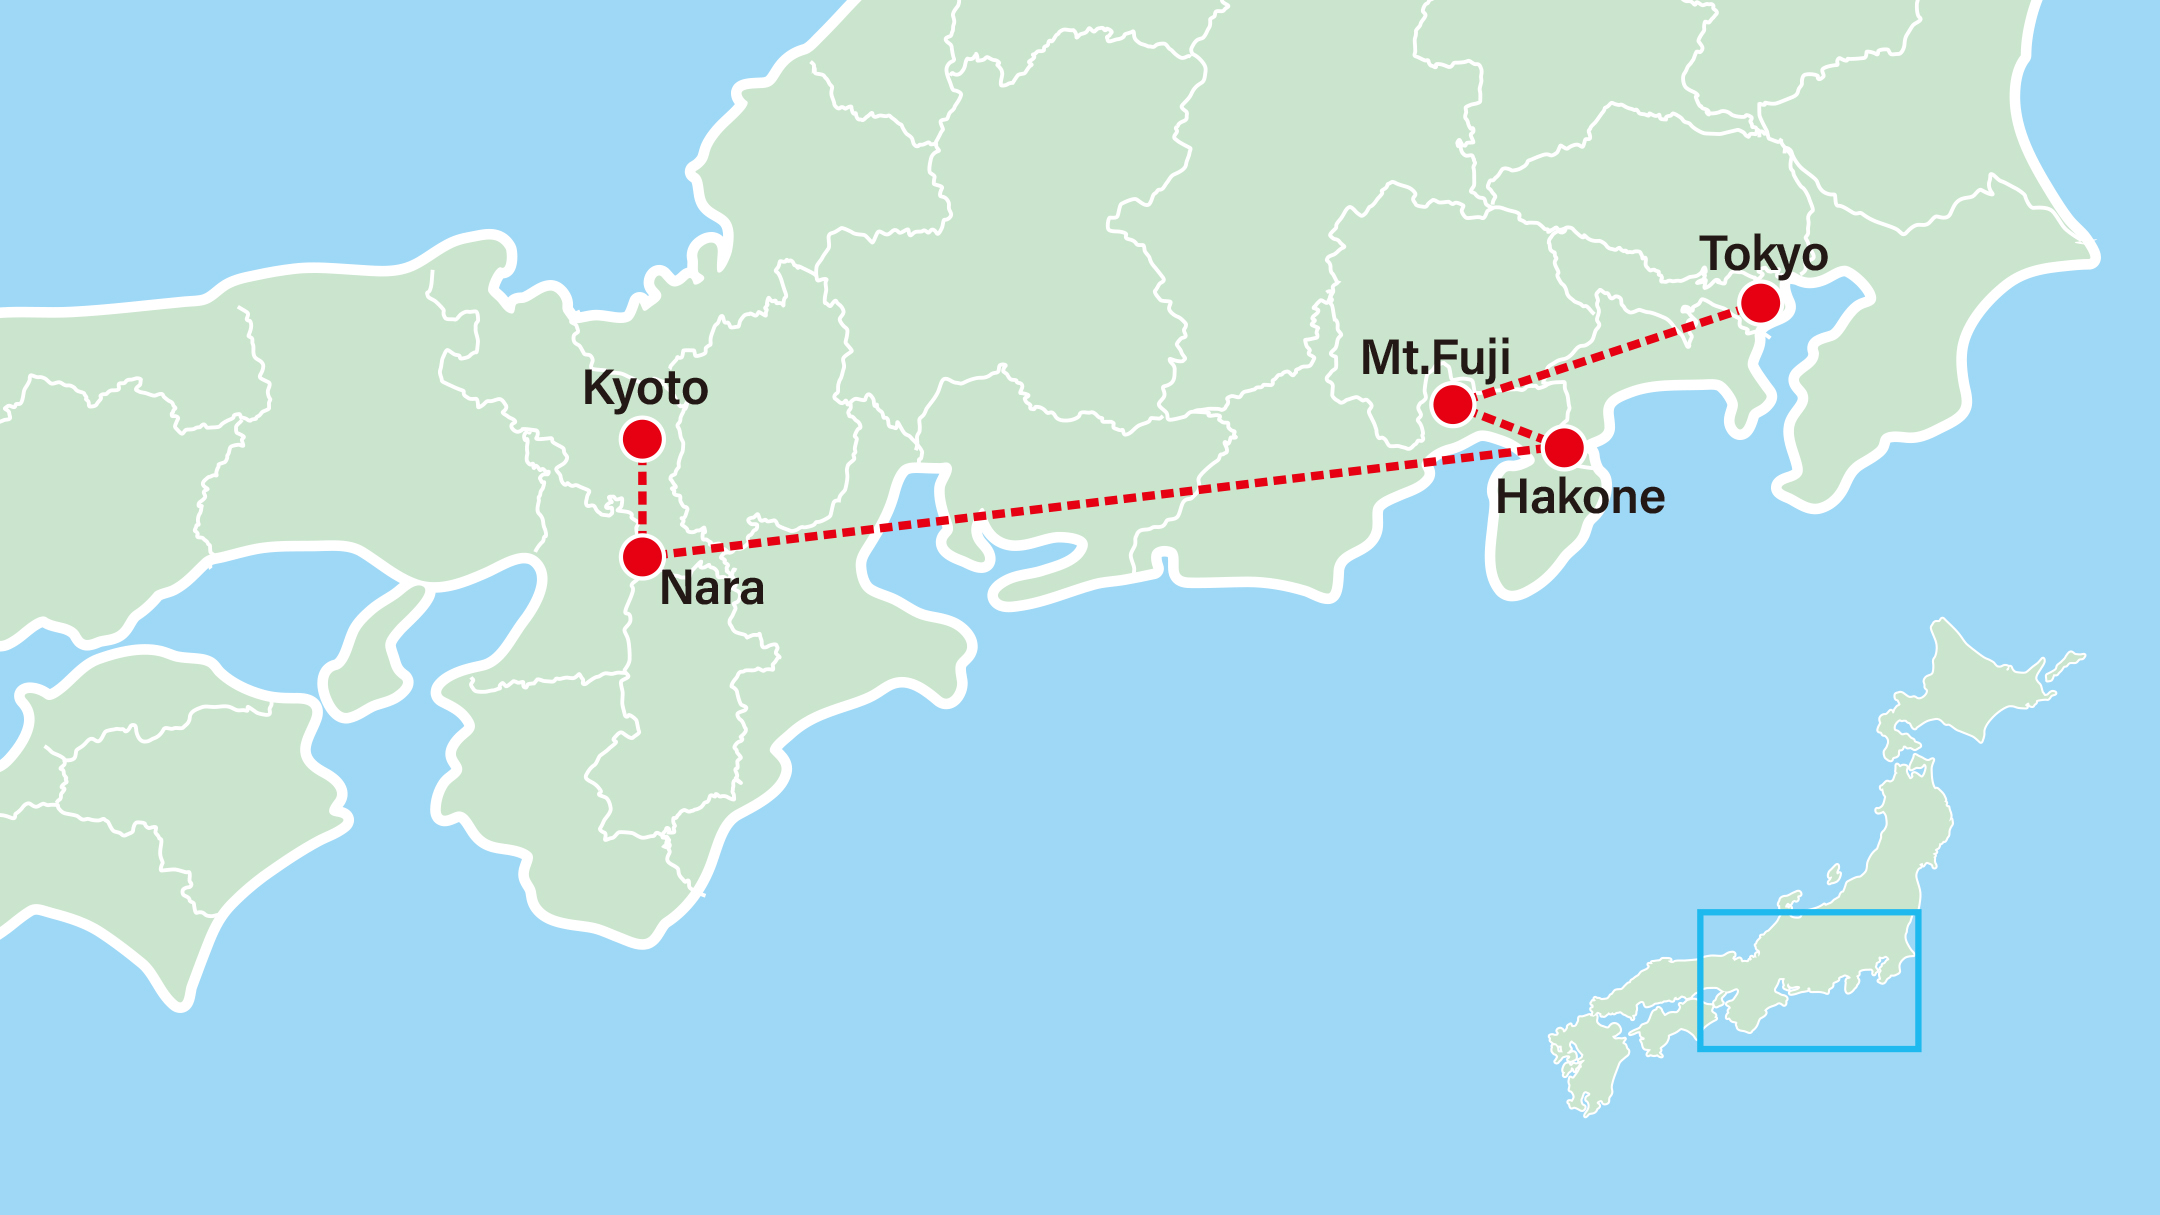 Golden Route with Game Show & Anime 9 Days-An epic 9 Days that serves as the perfect introductory tour of Japan with popular Anime Spots and Tokyo Game Show! Explore the mecca of Game Akihabara & the game related-stores.  Your journey continue to Kyoto, Nara, and more!